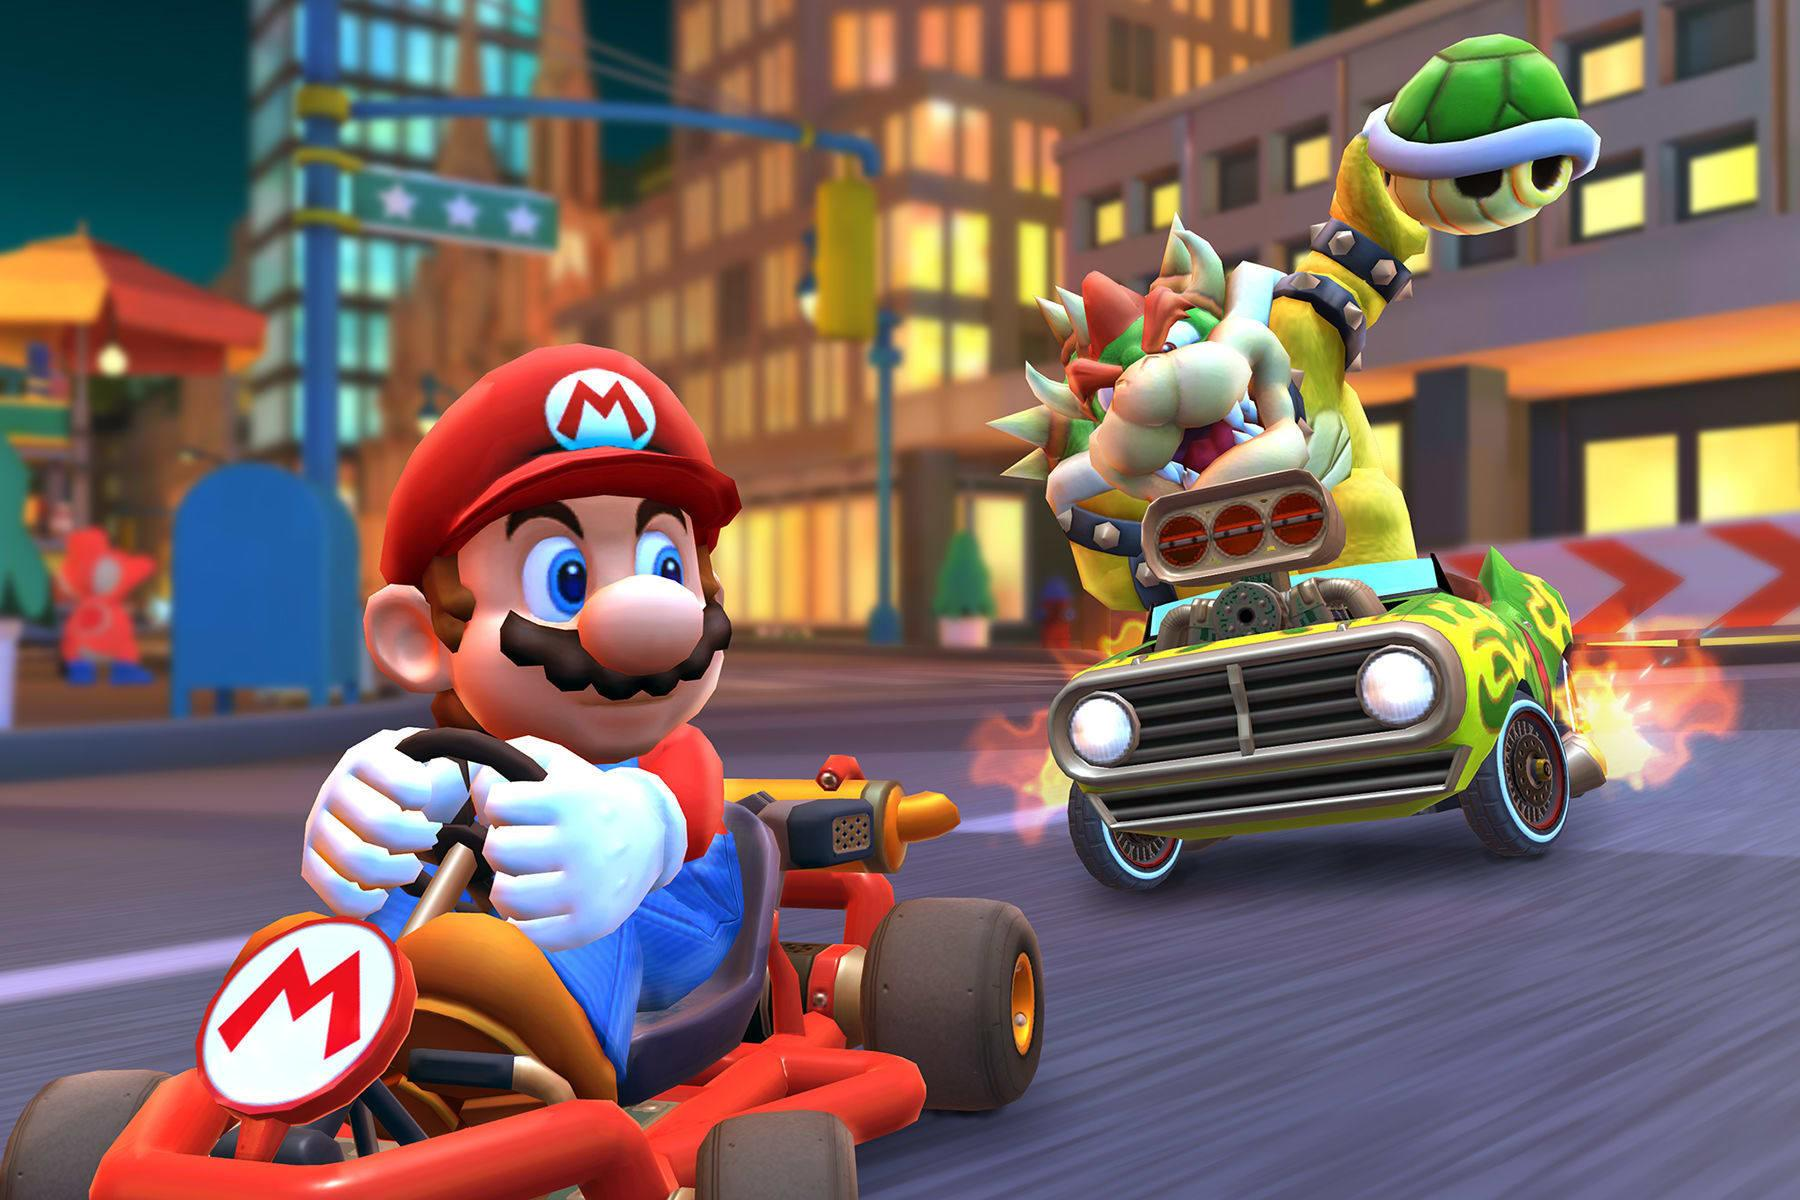 Photo of Mario Kart Tour 2nd multiplayer test does not require a gold pass, adds the ability to race with nearby people-Engadget Japan version